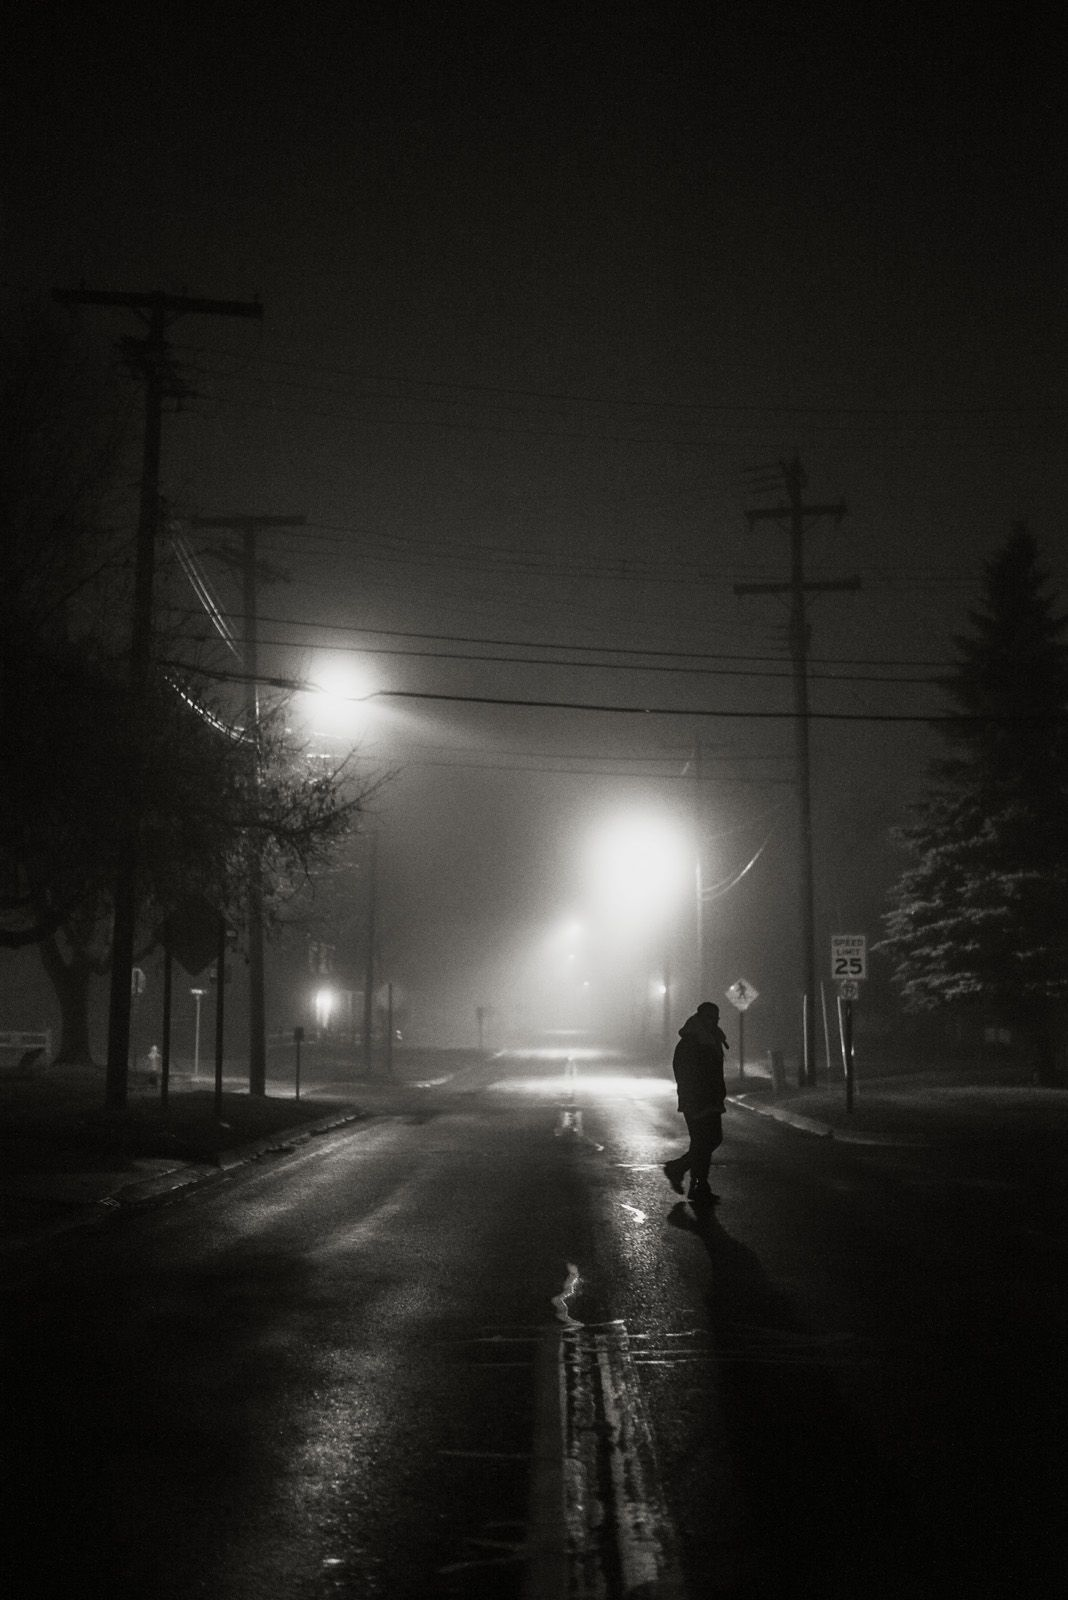 Oh Hey There Stranger Man Crossing The Street On A Foggy Night Howell Michigan Marissa Hoard Photography Nature Photographs Photography Nature